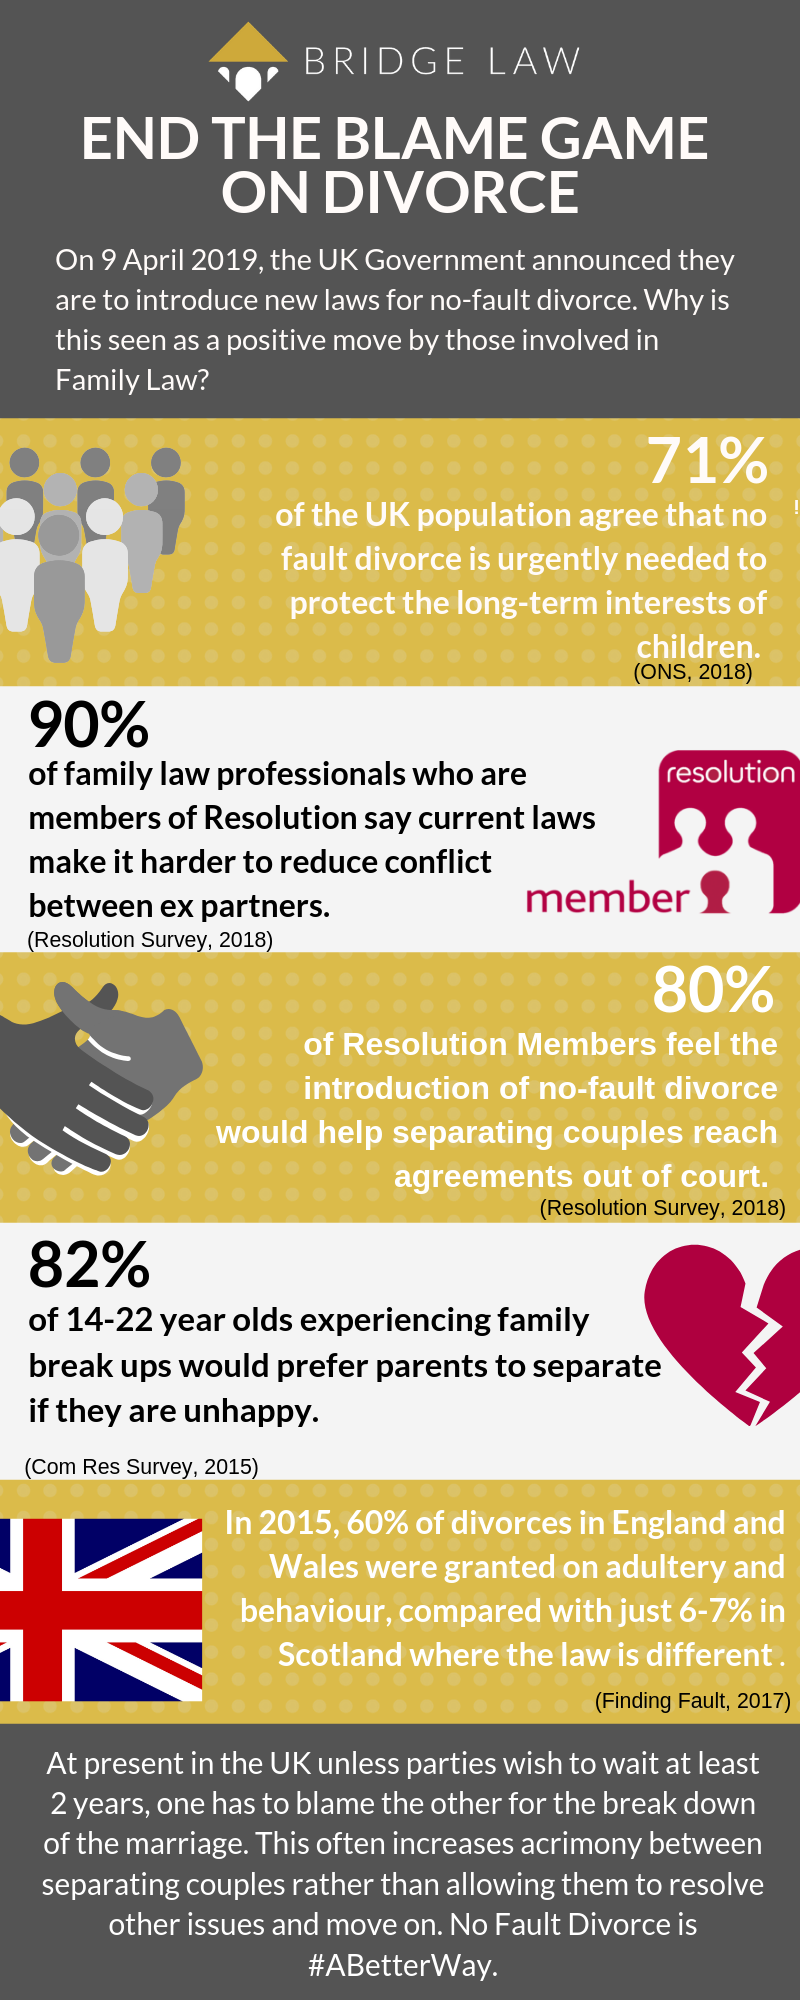 Infographic explaining statistics that support the need for No Fault Divorce in the UK after the government announces in April 2019 that they will be introducing new divorce laws in future